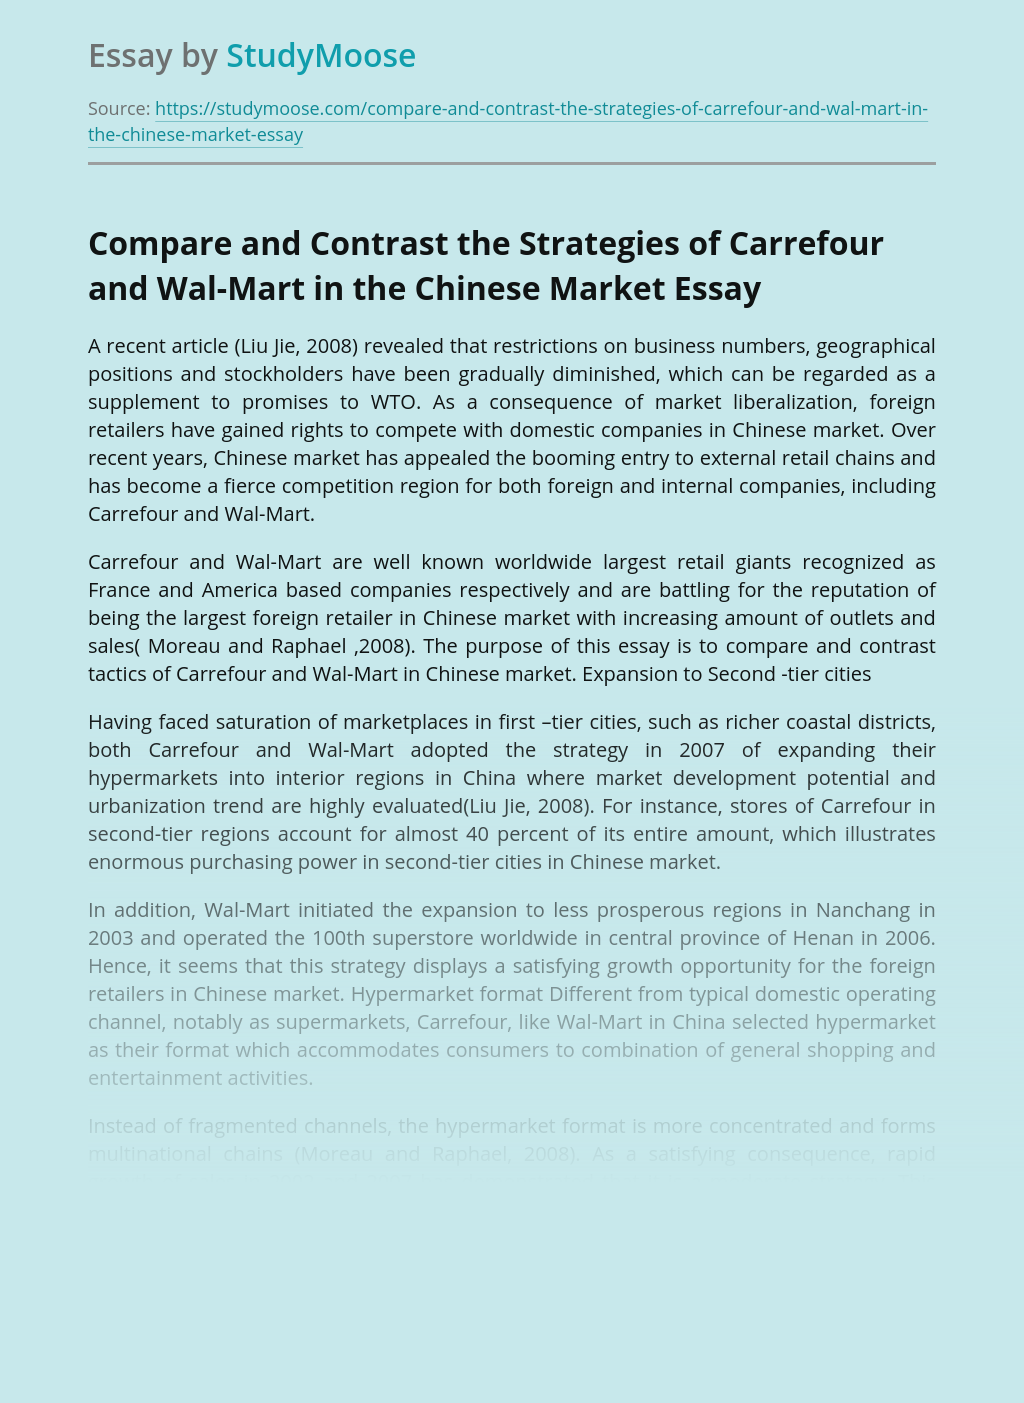 Compare and Contrast the Strategies of Carrefour and Wal-Mart in the Chinese Market